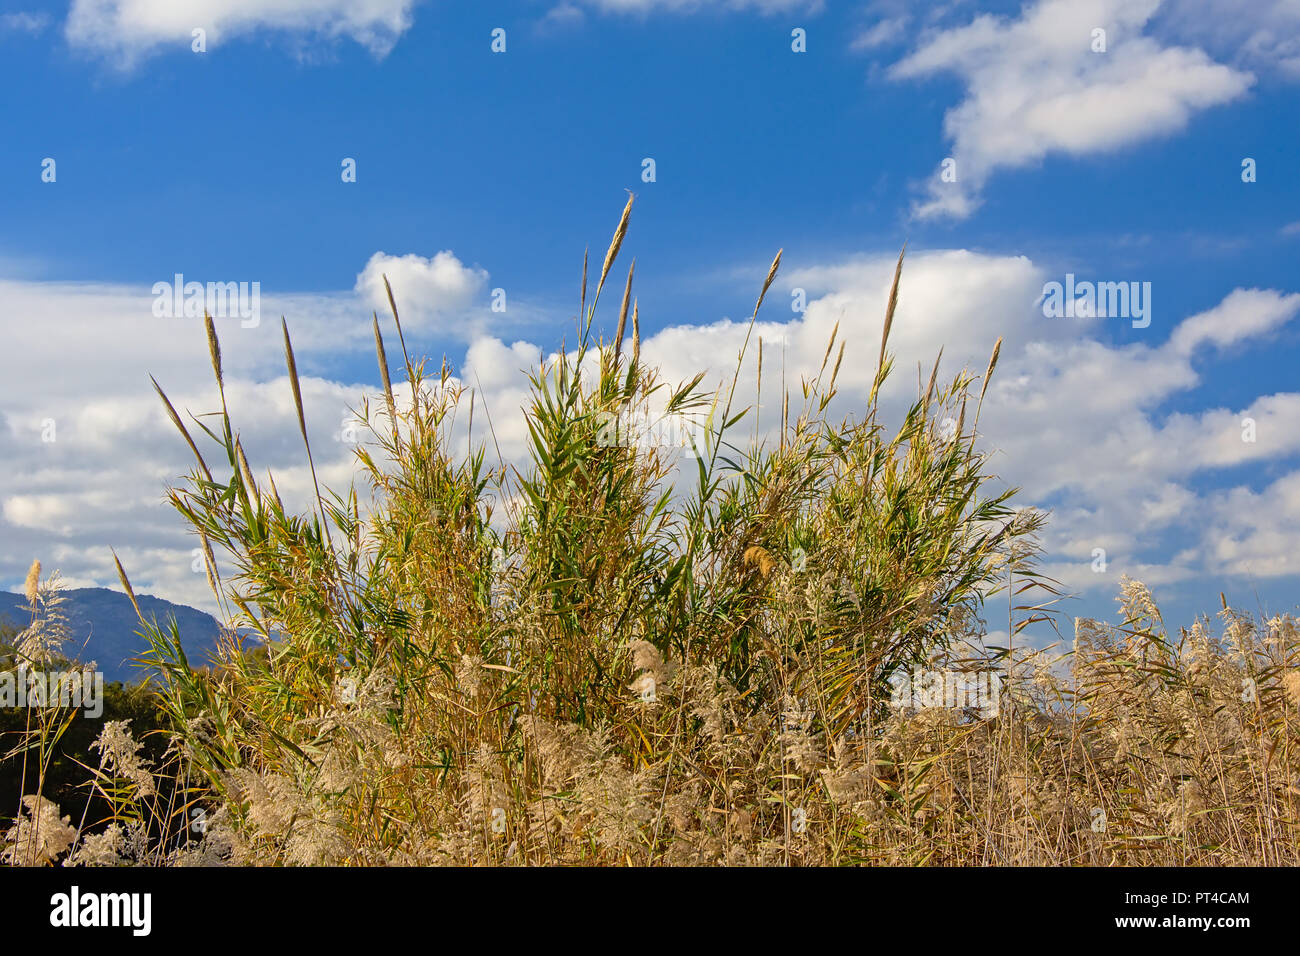 Sunny giant reeds under a blue sky with soft clouds in Guadalhorce river estuary nature reserve in Malaga - Arundo donax - Stock Image